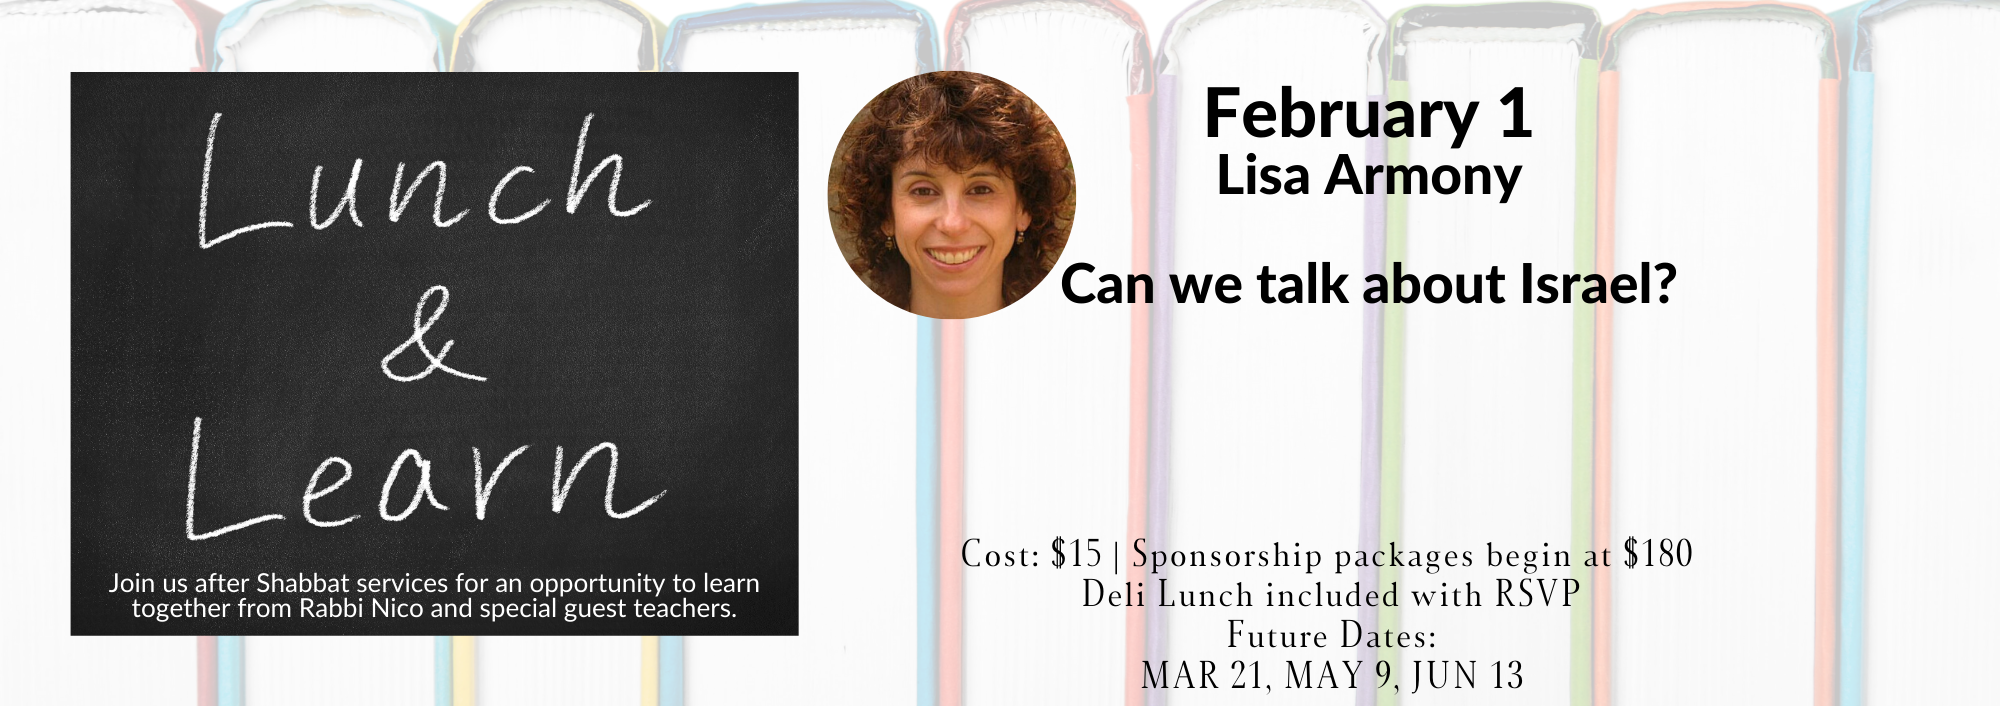 Banner Image for Lunch & Learn: Lisa Armony